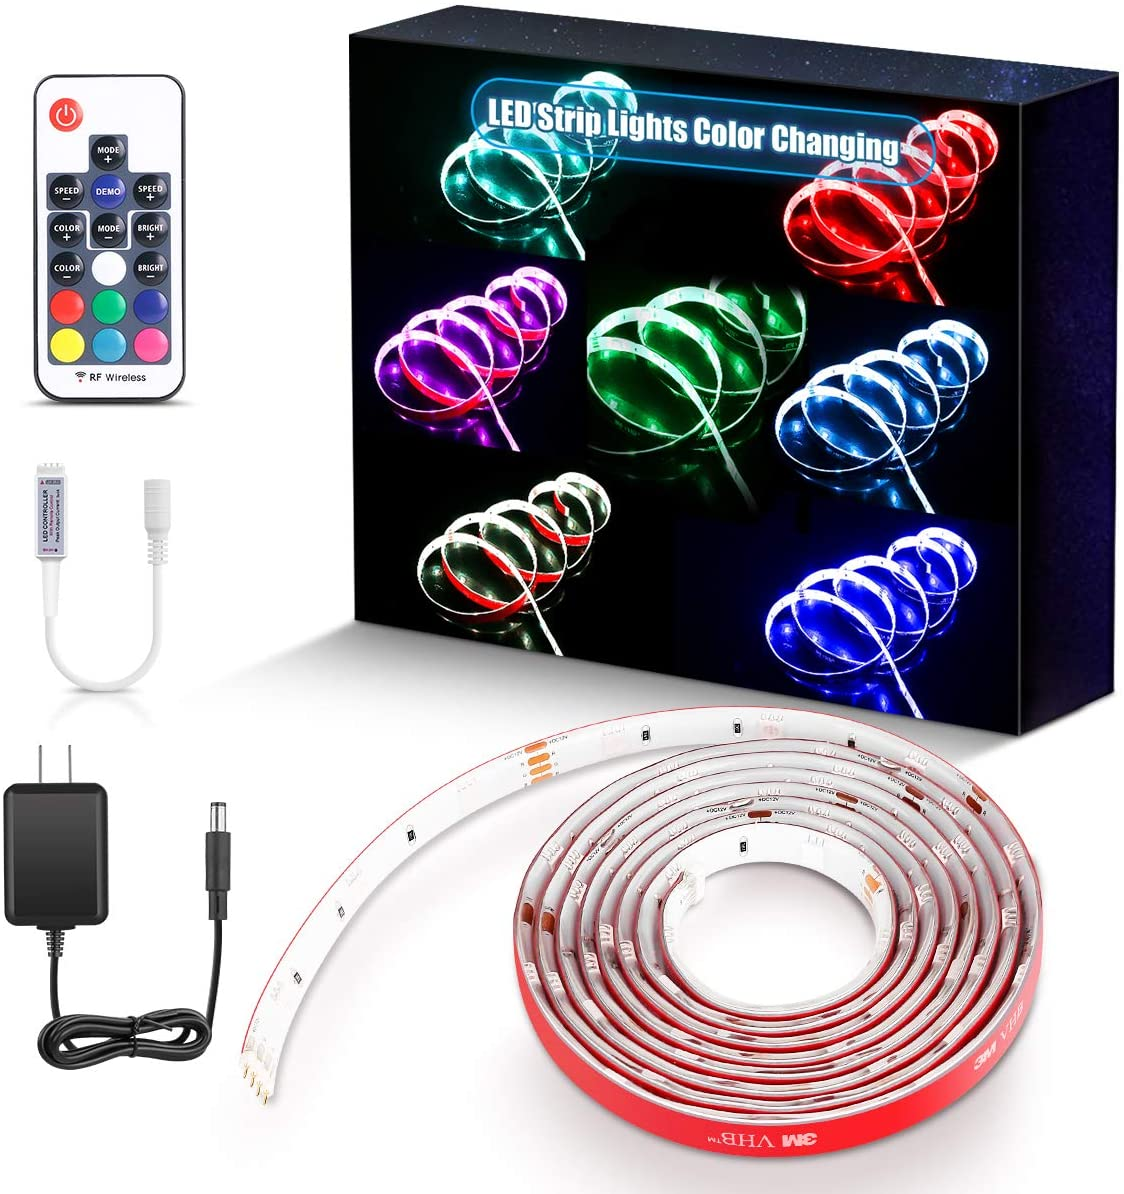 PryEU LED Light Strips 2M SMD 5050 RGB Color Changing RF Remote Control Waterproof Extendable with 12V Power Supply for Kitchen Room Ambient Lighting/Under Bed Cabinets